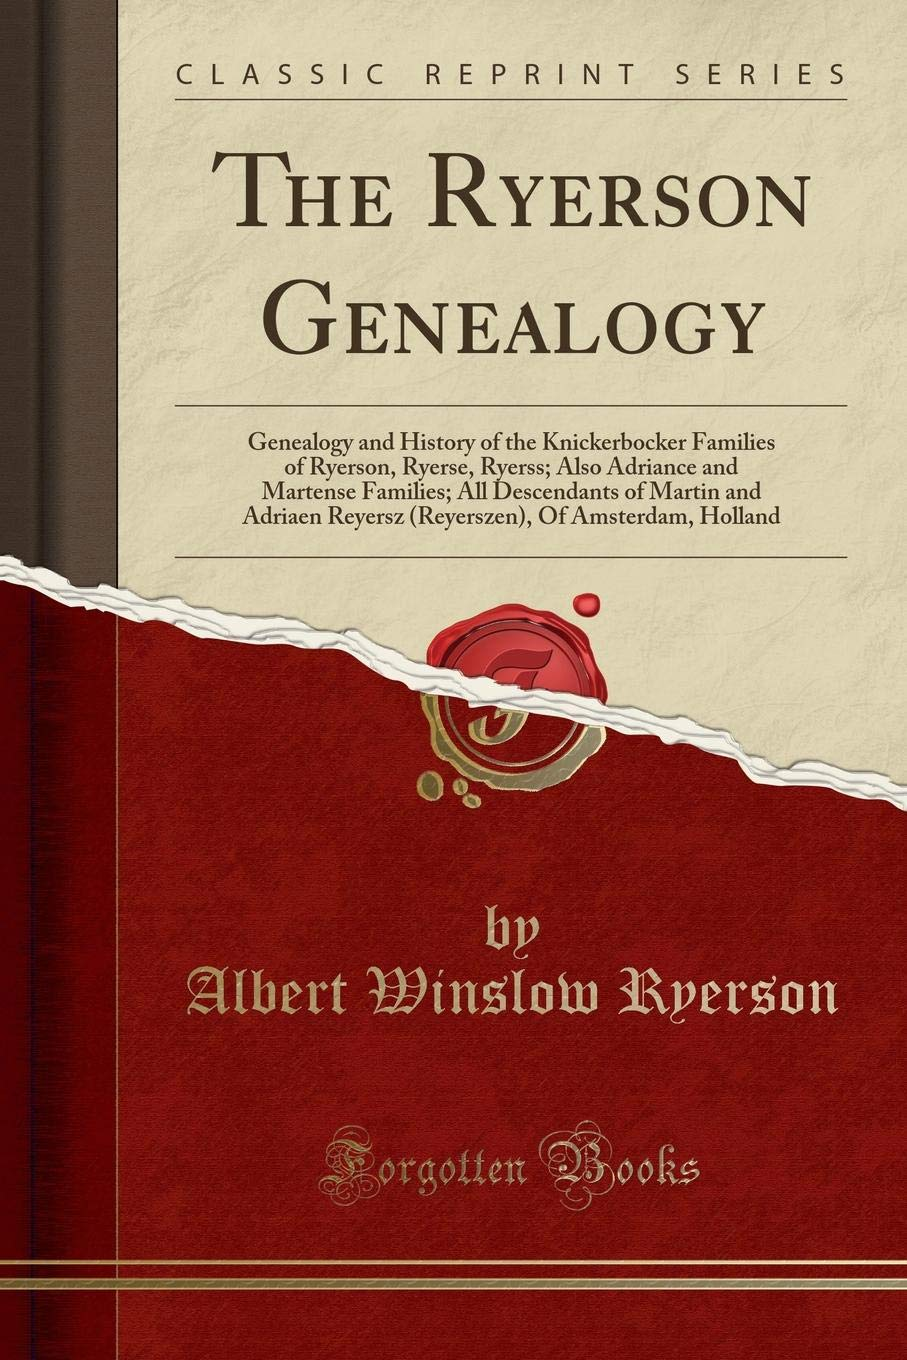 The Ryerson Genealogy: Genealogy and History of the Knickerbocker Families of Ryerson, Ryerse, Ryerss; Also Adriance and Martense Families; All ... Of Amsterdam, Holland (Classic Reprint) ebook